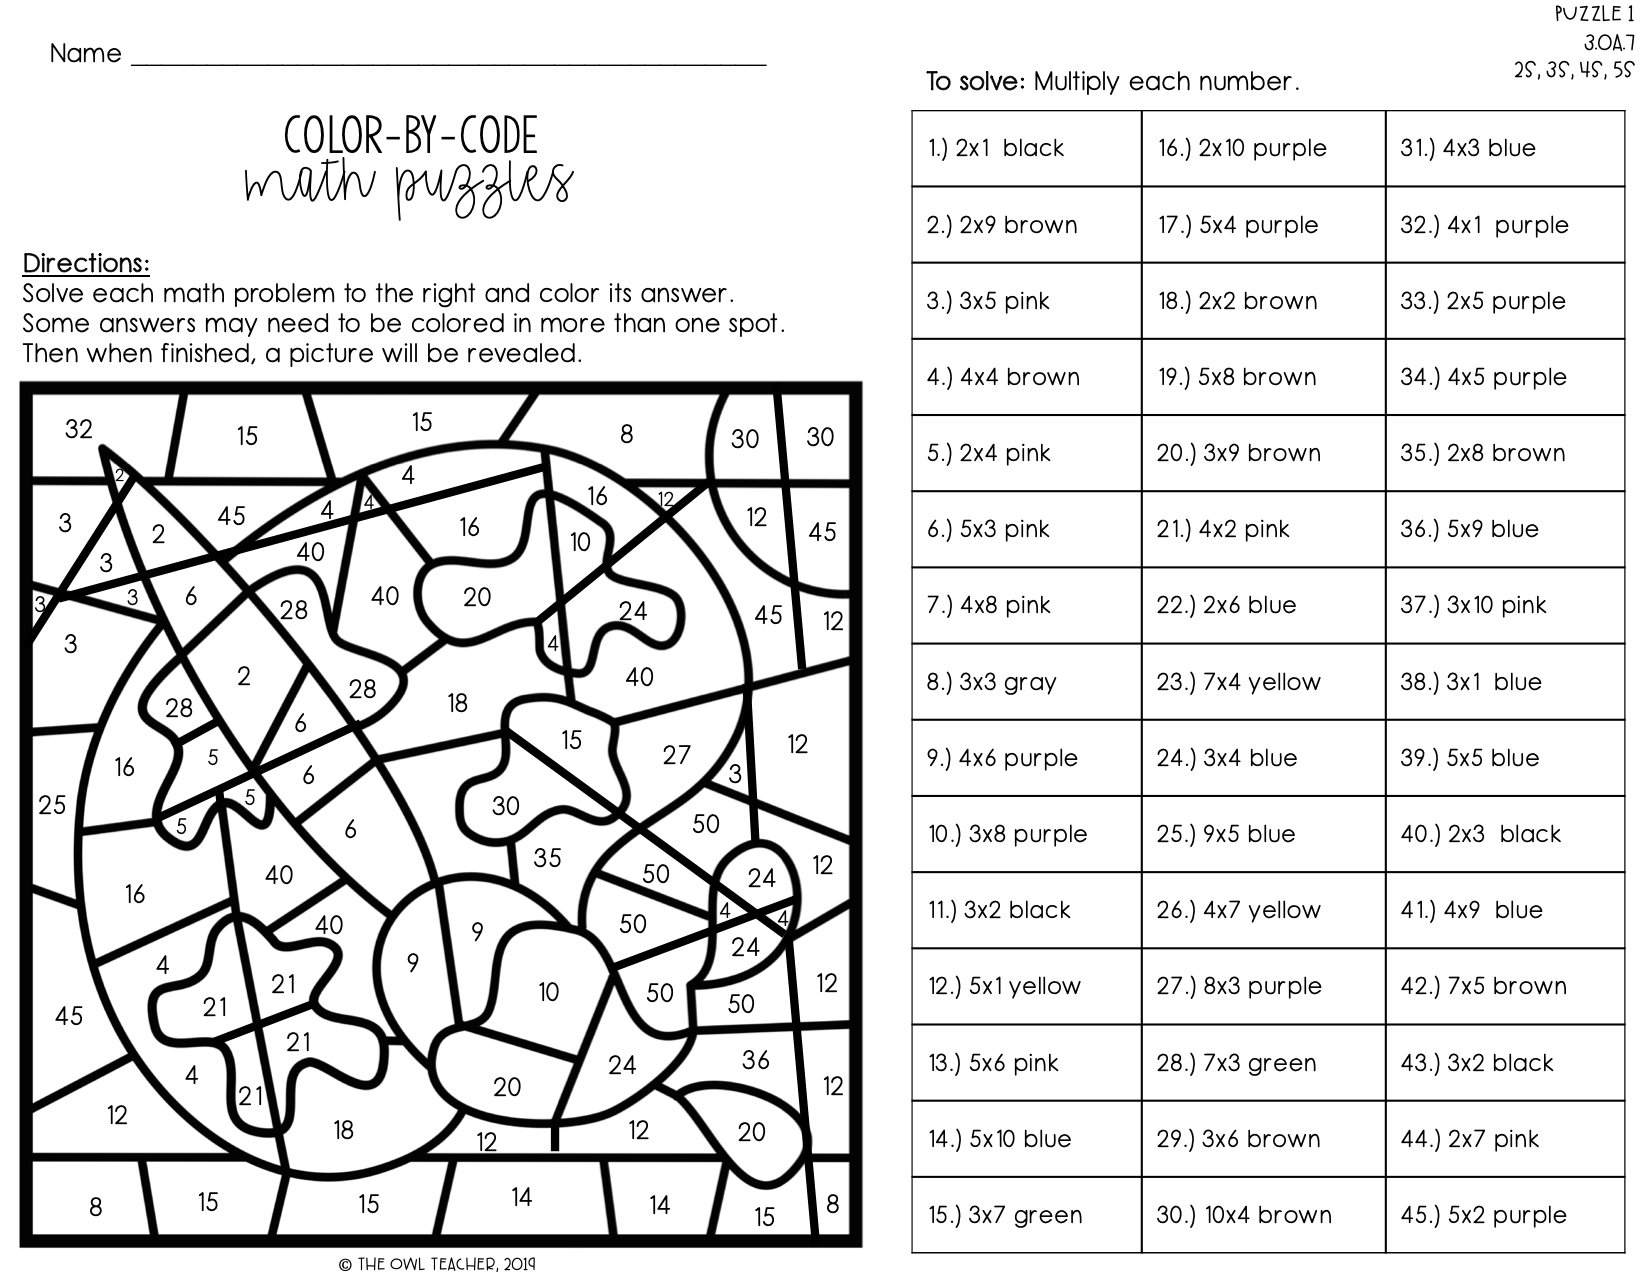 - Multiplication Facts Color By Number (Color By Code